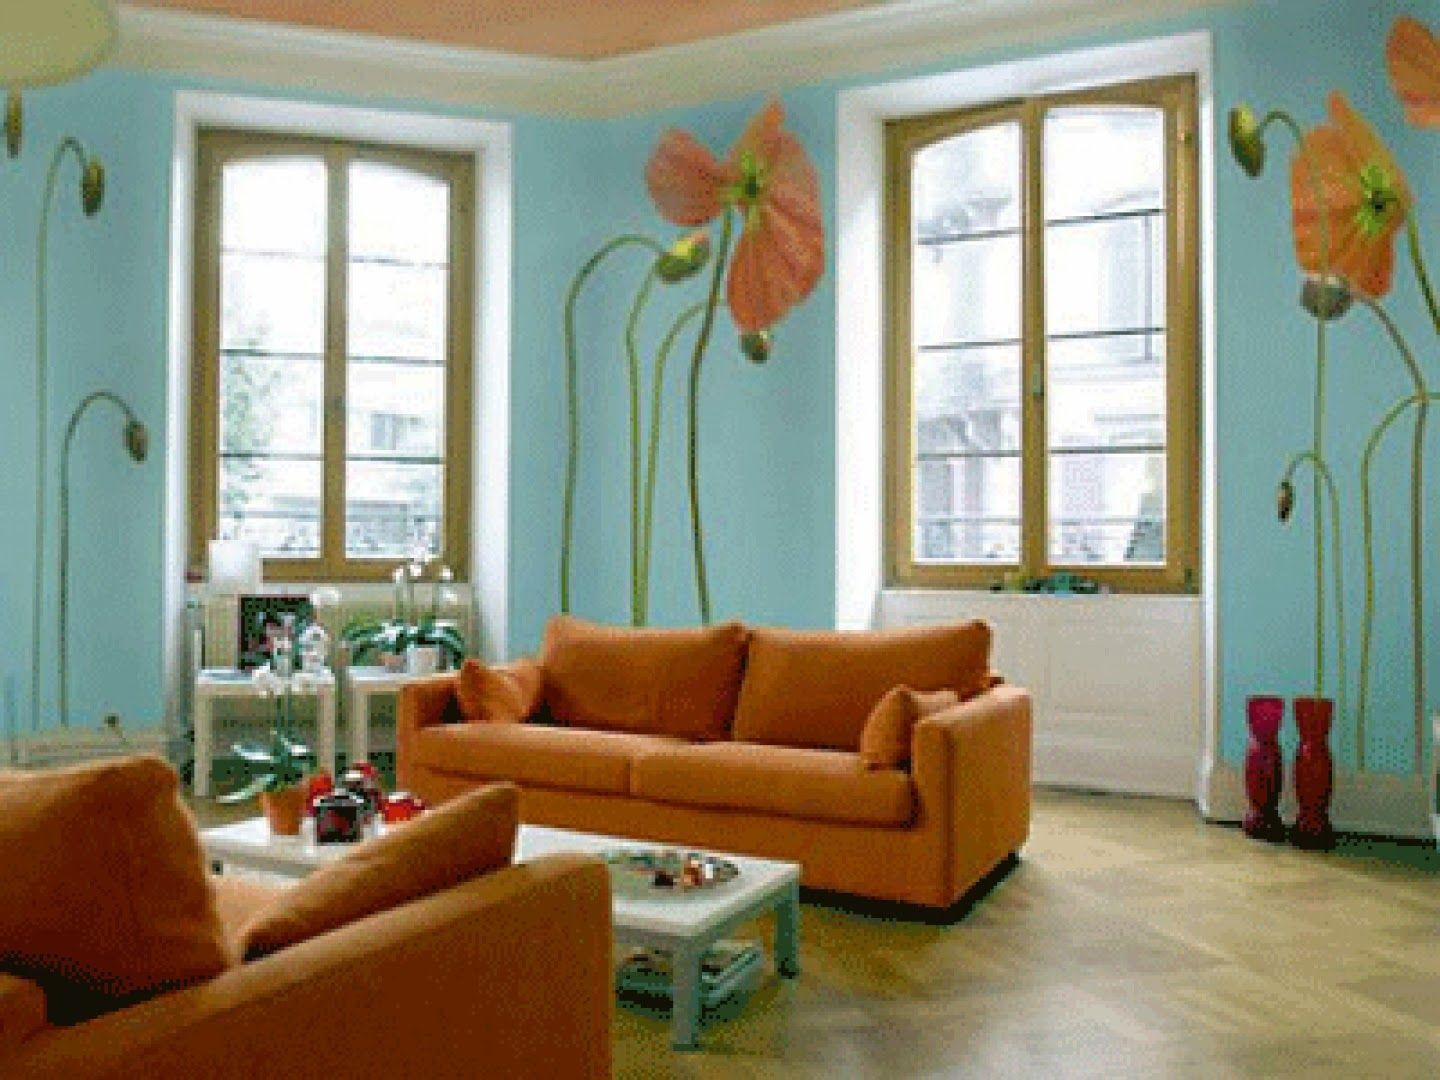 Interior paint color schemes living room - Interior Awesome Living Room Decoration With Light Blue Asian Paint Wall Colors Along With